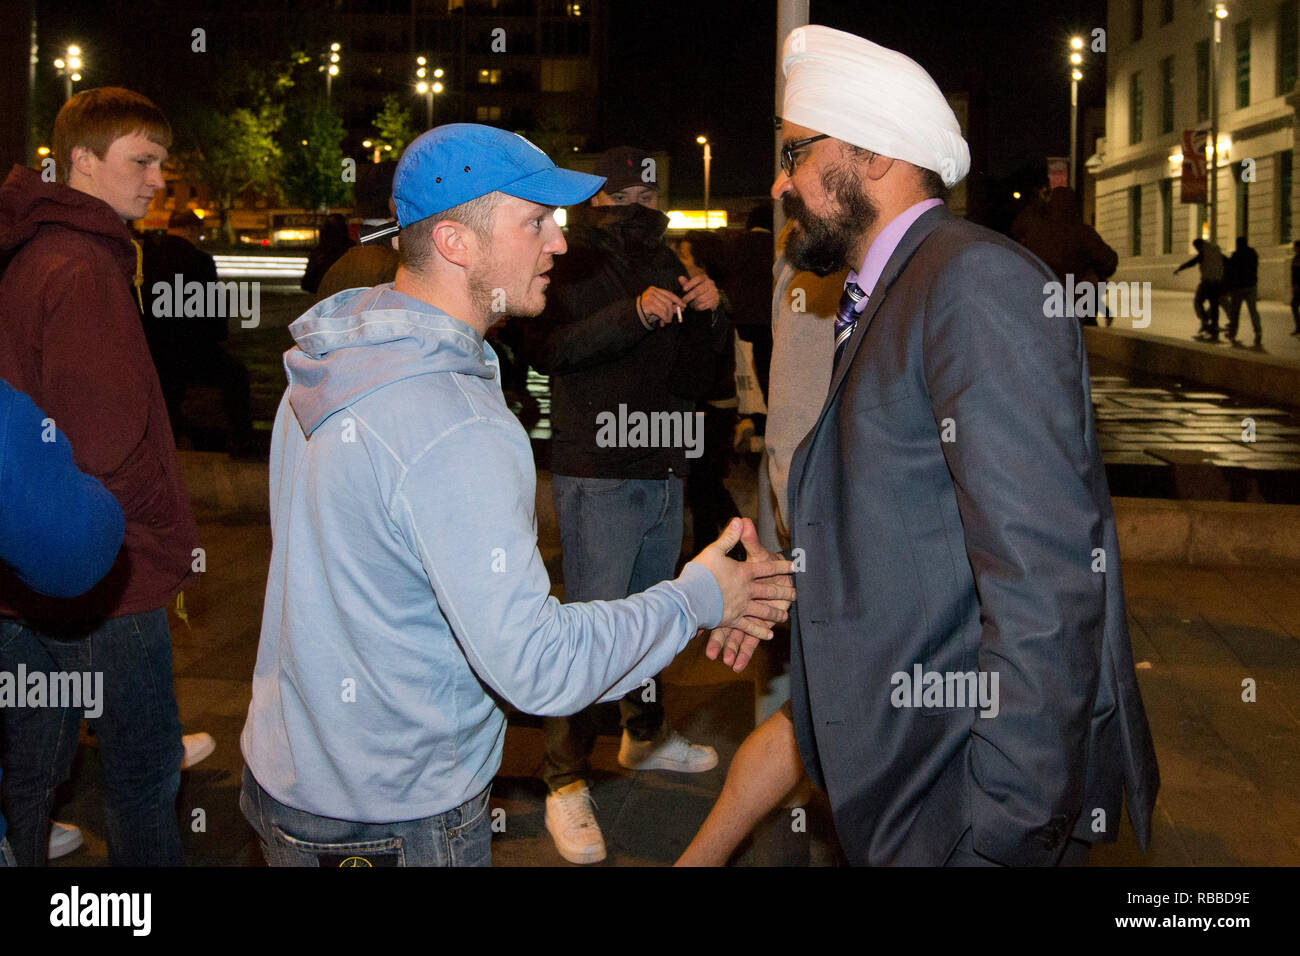 EDL leader Tommy Robbinson shakes hands with a man in Woolwich after serving soldier Lee Rigby was murdered nearby. 22.05.2013. - Stock Image